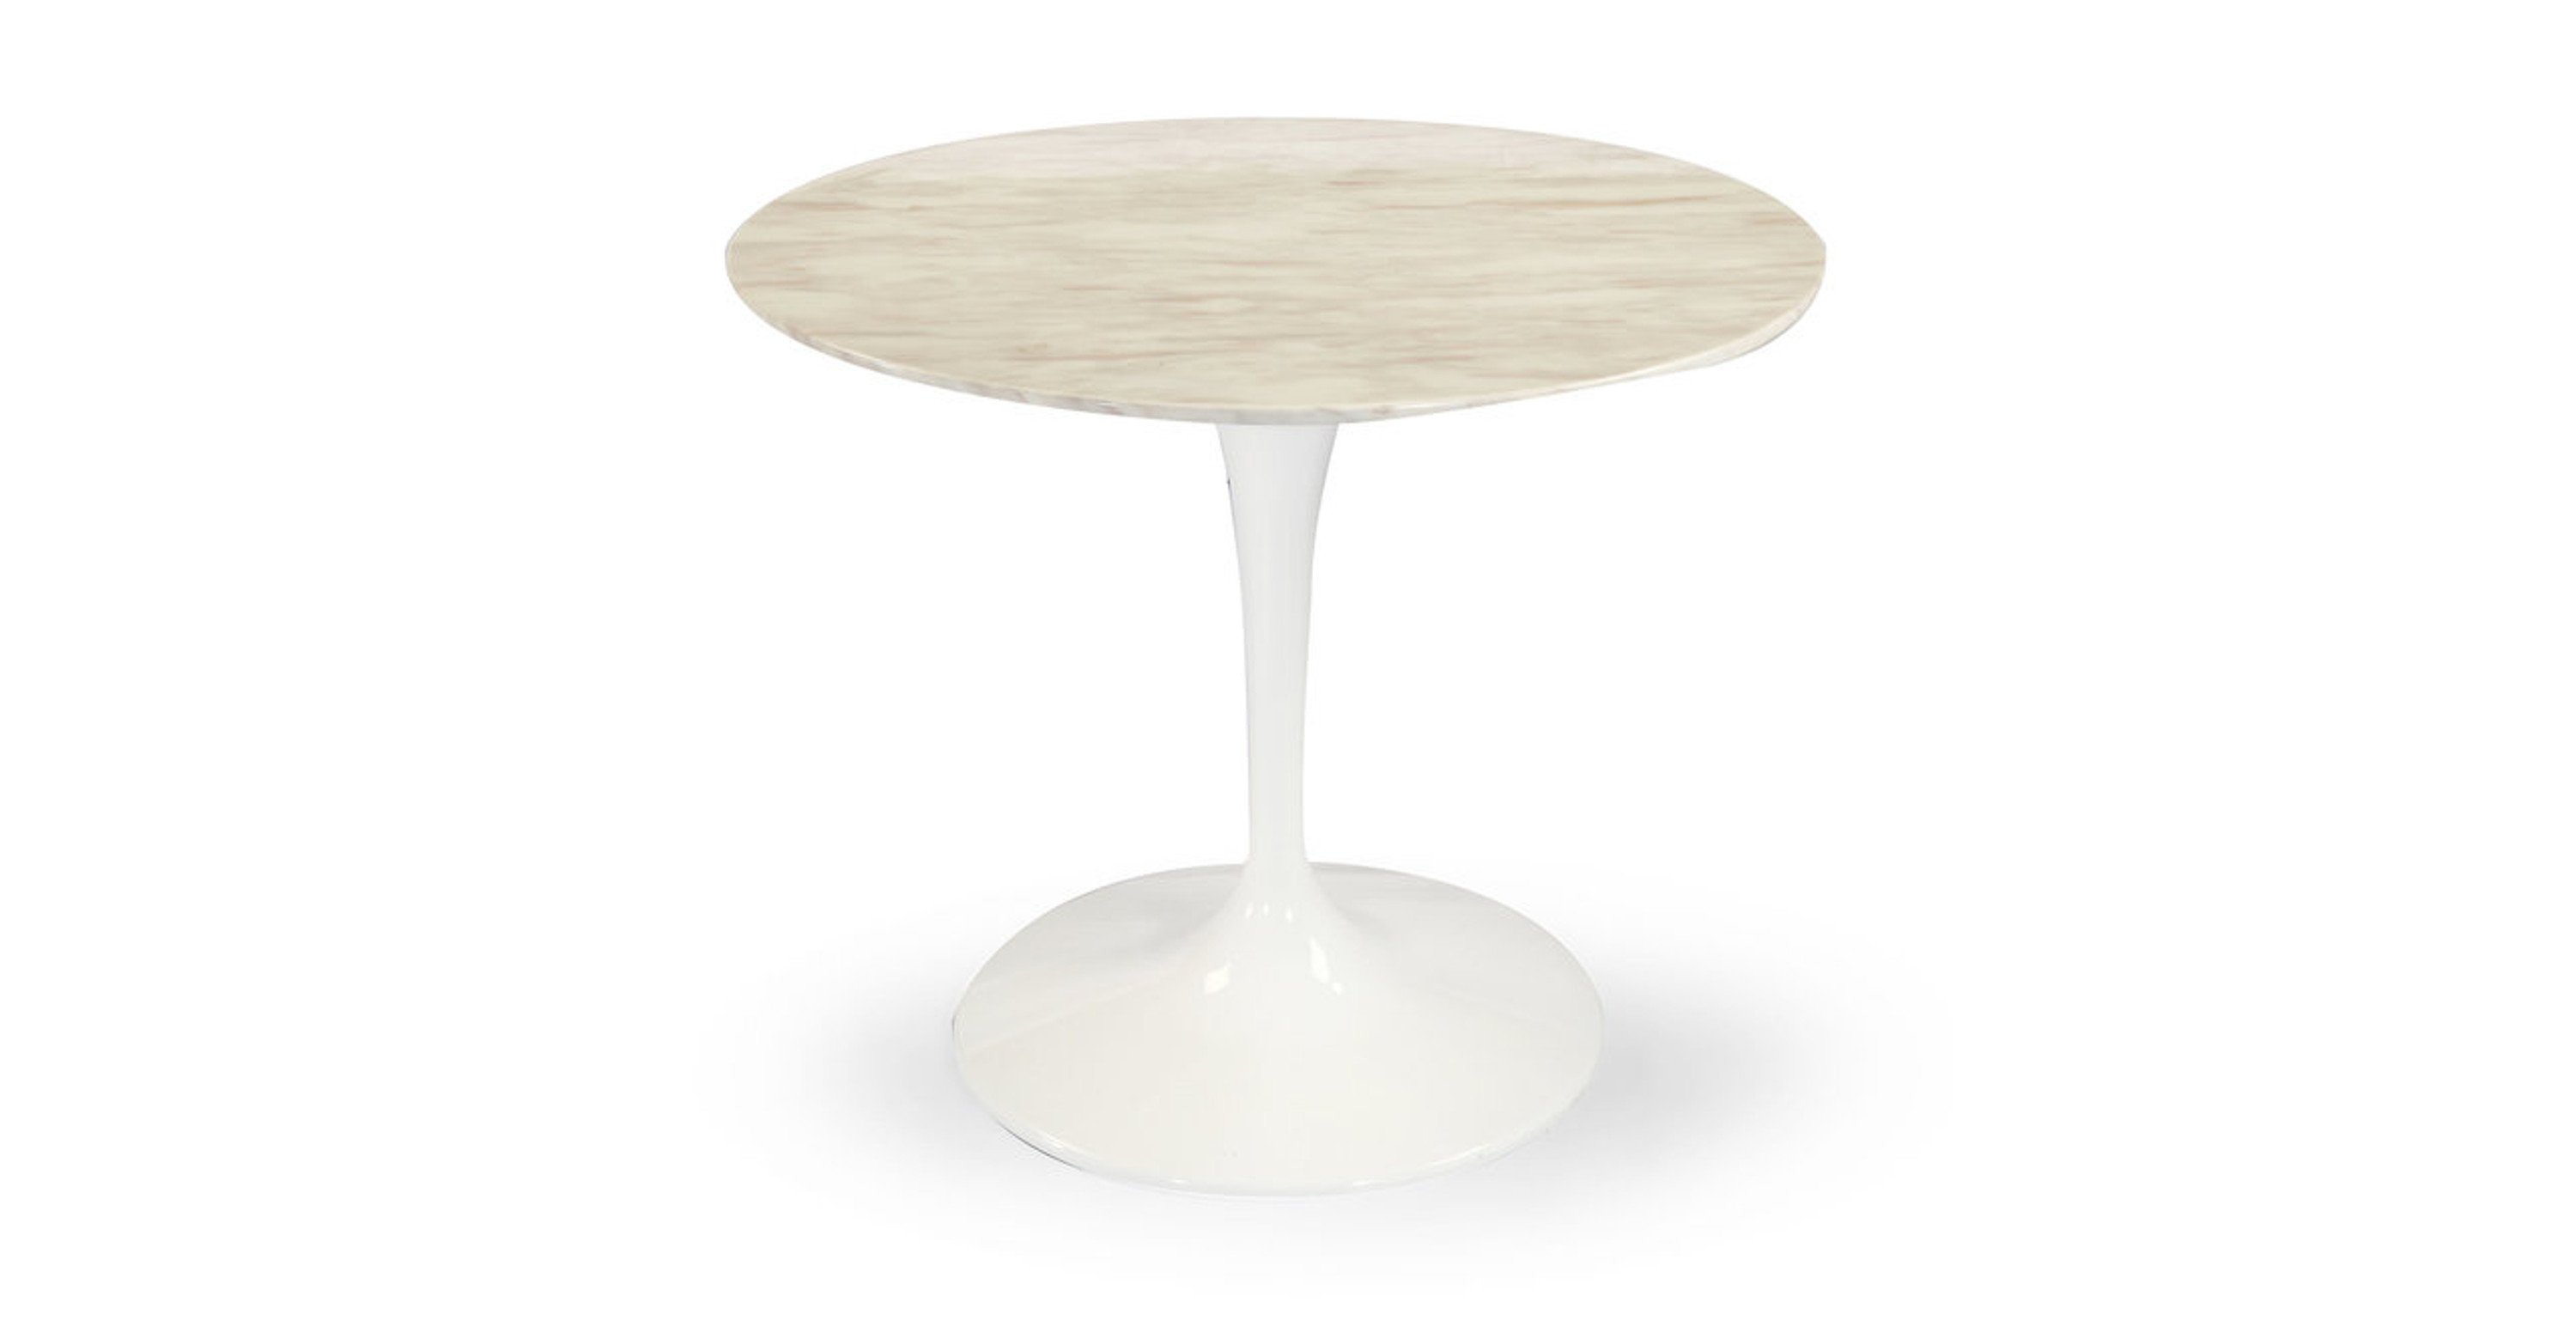 quality design 8662d 2899a Tulip Table, White Marble 44